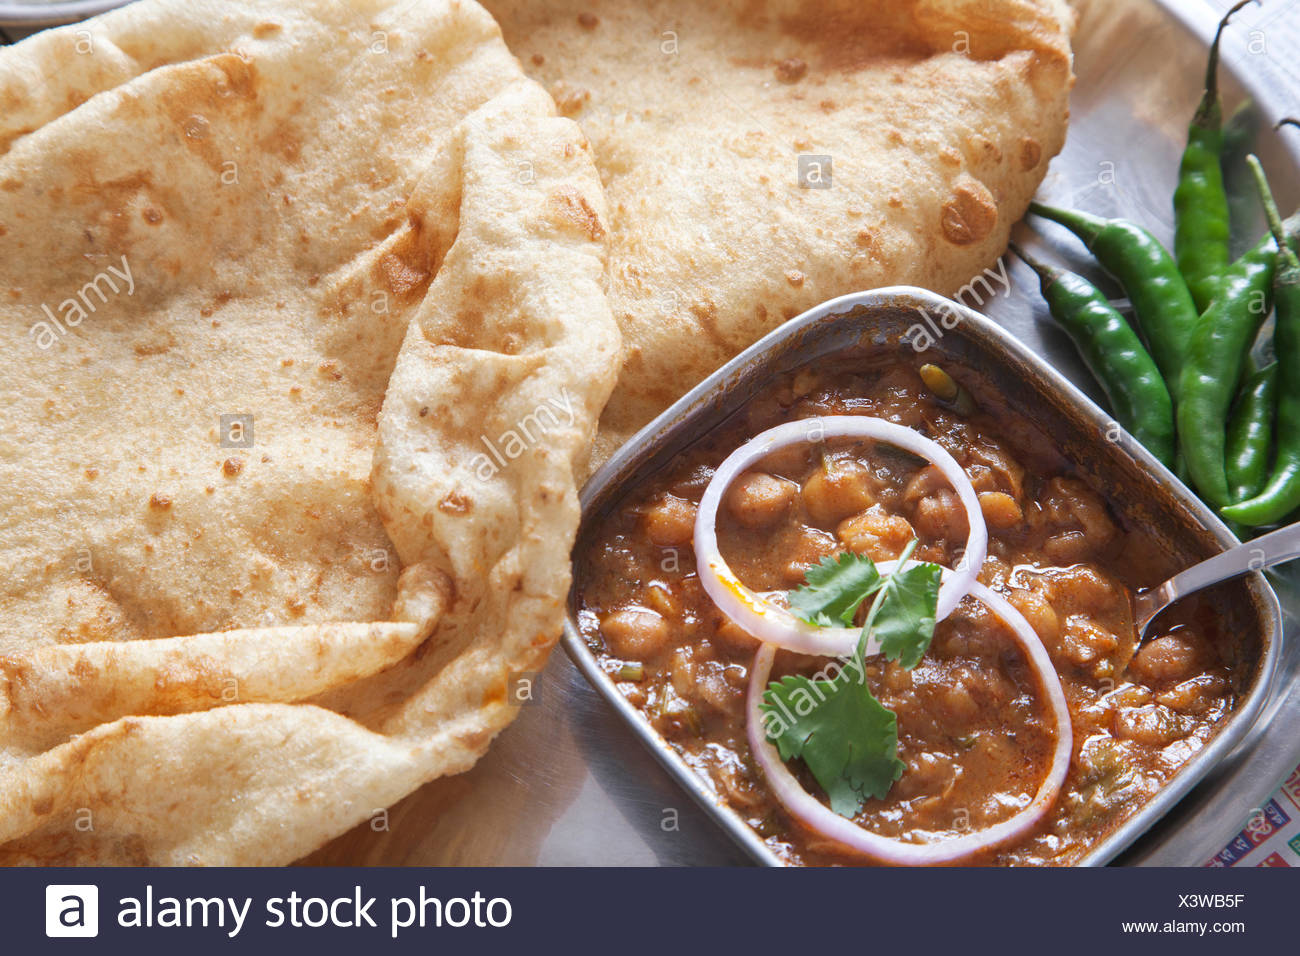 Close-up chole bhature served at table - Stock Image